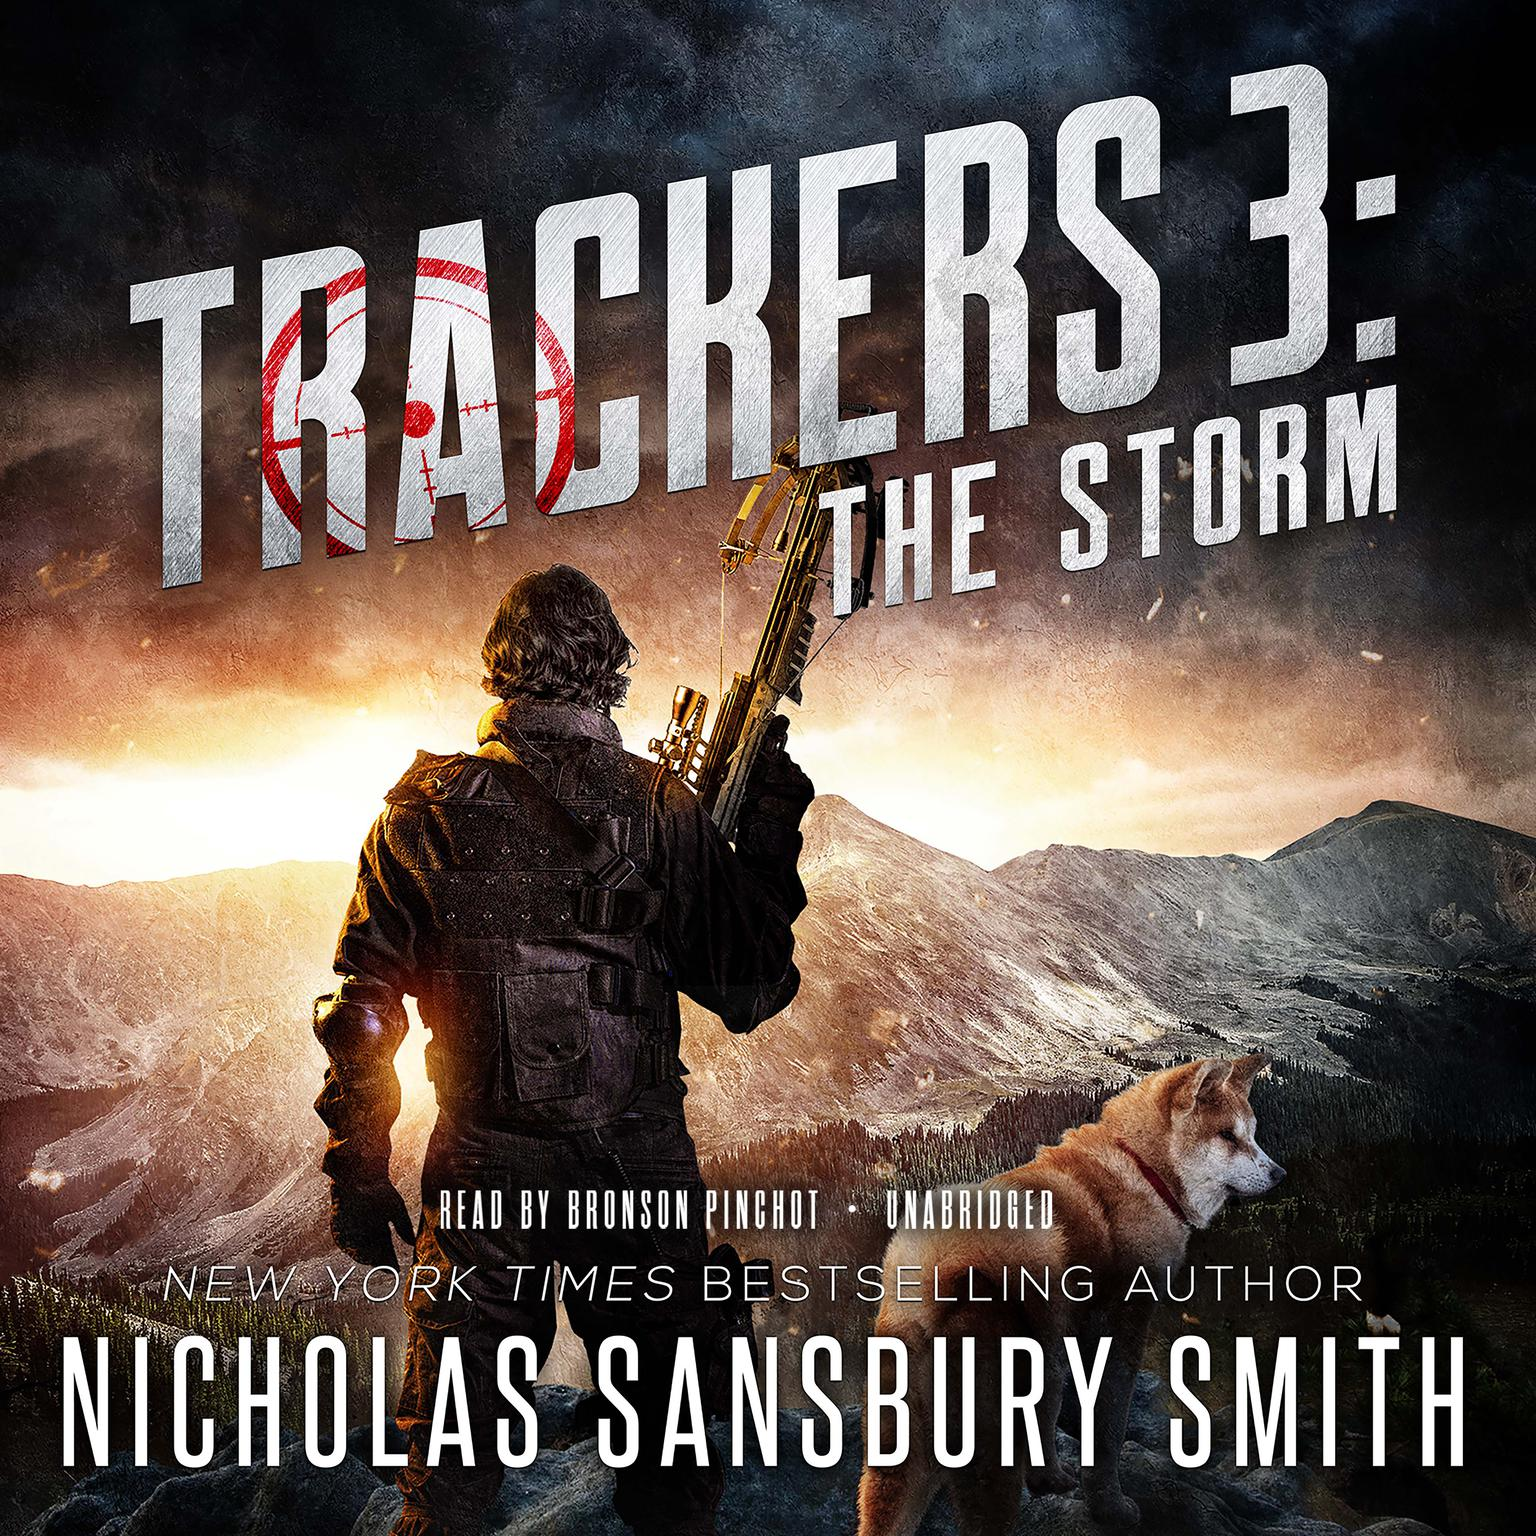 Printable Trackers 3: The Storm Audiobook Cover Art